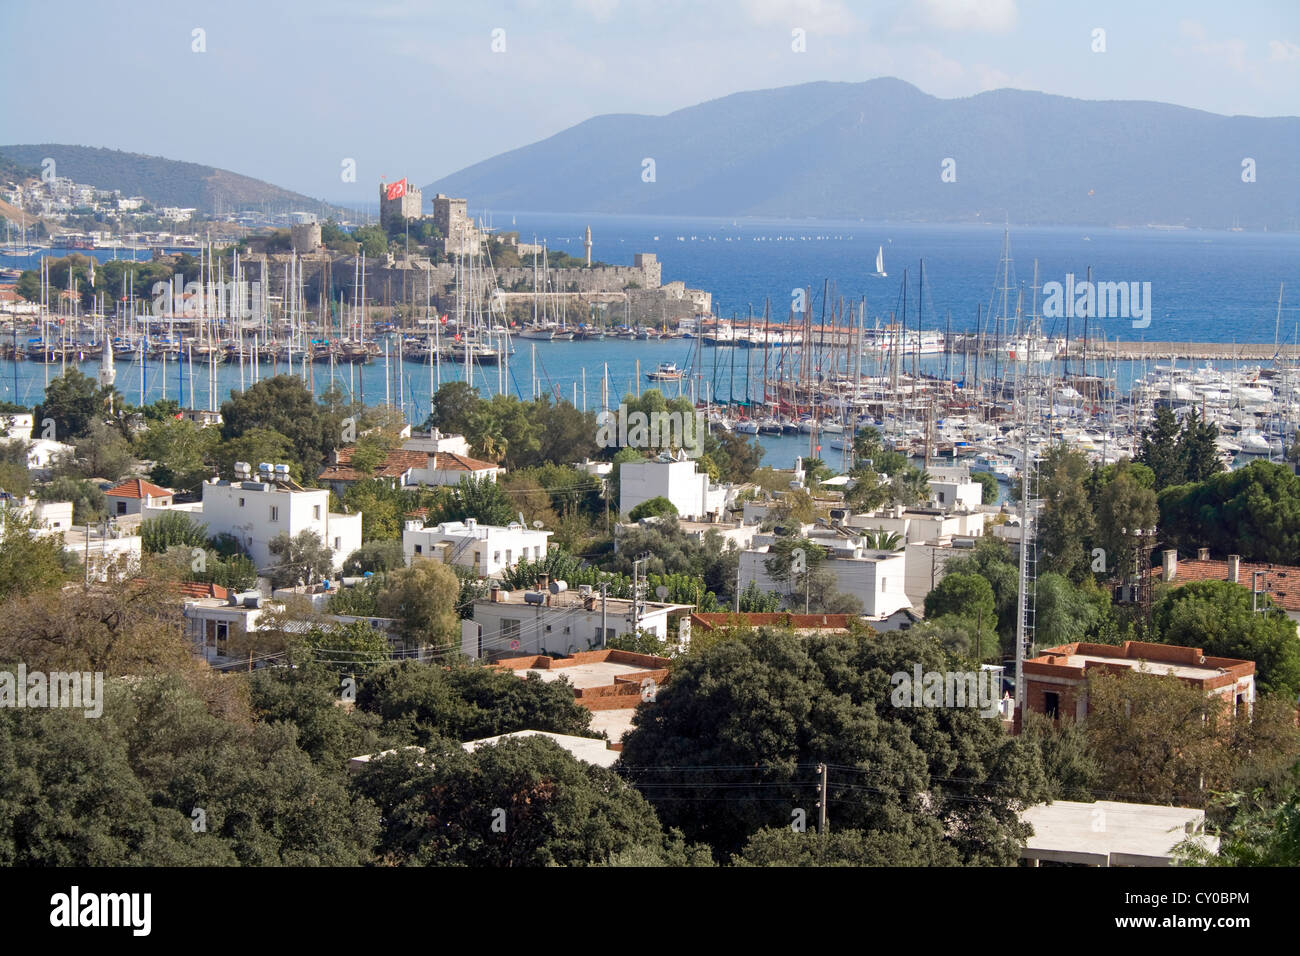 Cityscape, St. Peter's Castle, Bodrum Castle, landmark, fortress from the Middle Ages, Bodrum, Turkey, Mediterranean - Stock Image